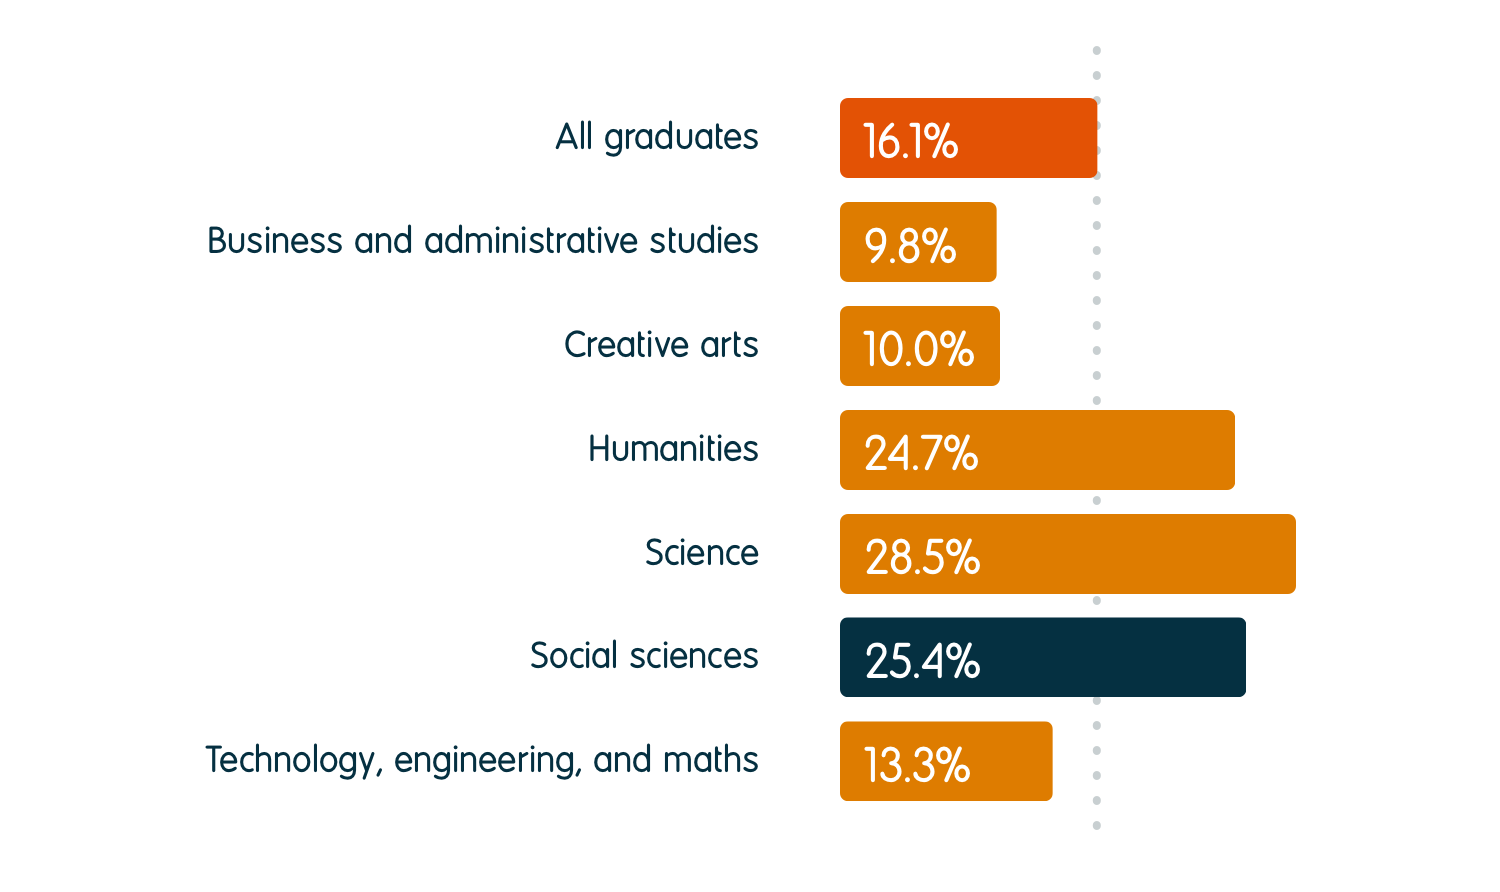 25.4% of social sciences graduates were in further study six months after graduation, compared to an average of 16.1% for all graduates. For other subject groups, the percentage going into further study was 9.8% for business and administrative studies, 10.0% for creative arts, 24.7% for humanities, 28.5% for science, and 13.3% for technology, engineering, and maths.